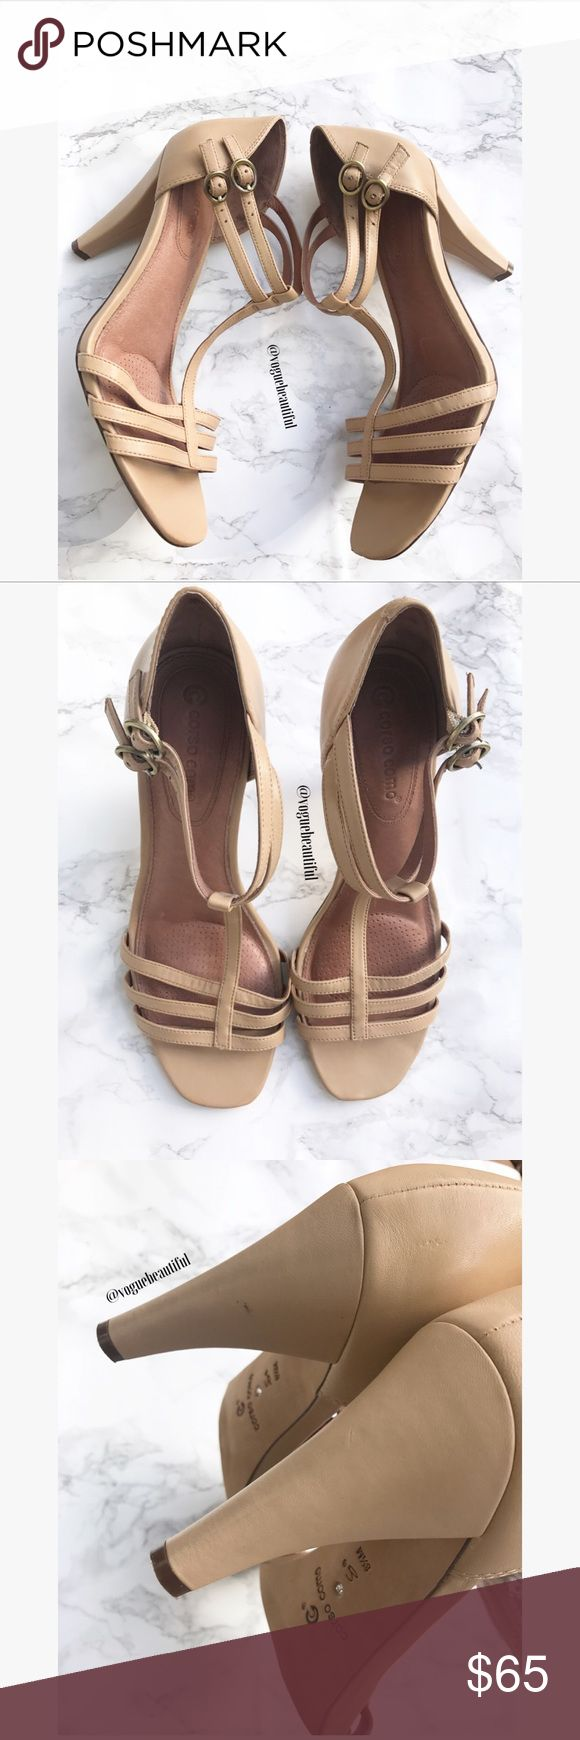 Corso Como Leather Tan Strappy Heels Super cute Corso Como leather tan/cream color heels - Size 8.5 M - excellent preloved condition with no major wear - heel height is 3.5 inches - purchased at Nordstrom - box not included-  !!NO TRADES!! Corso Como Shoes Heels